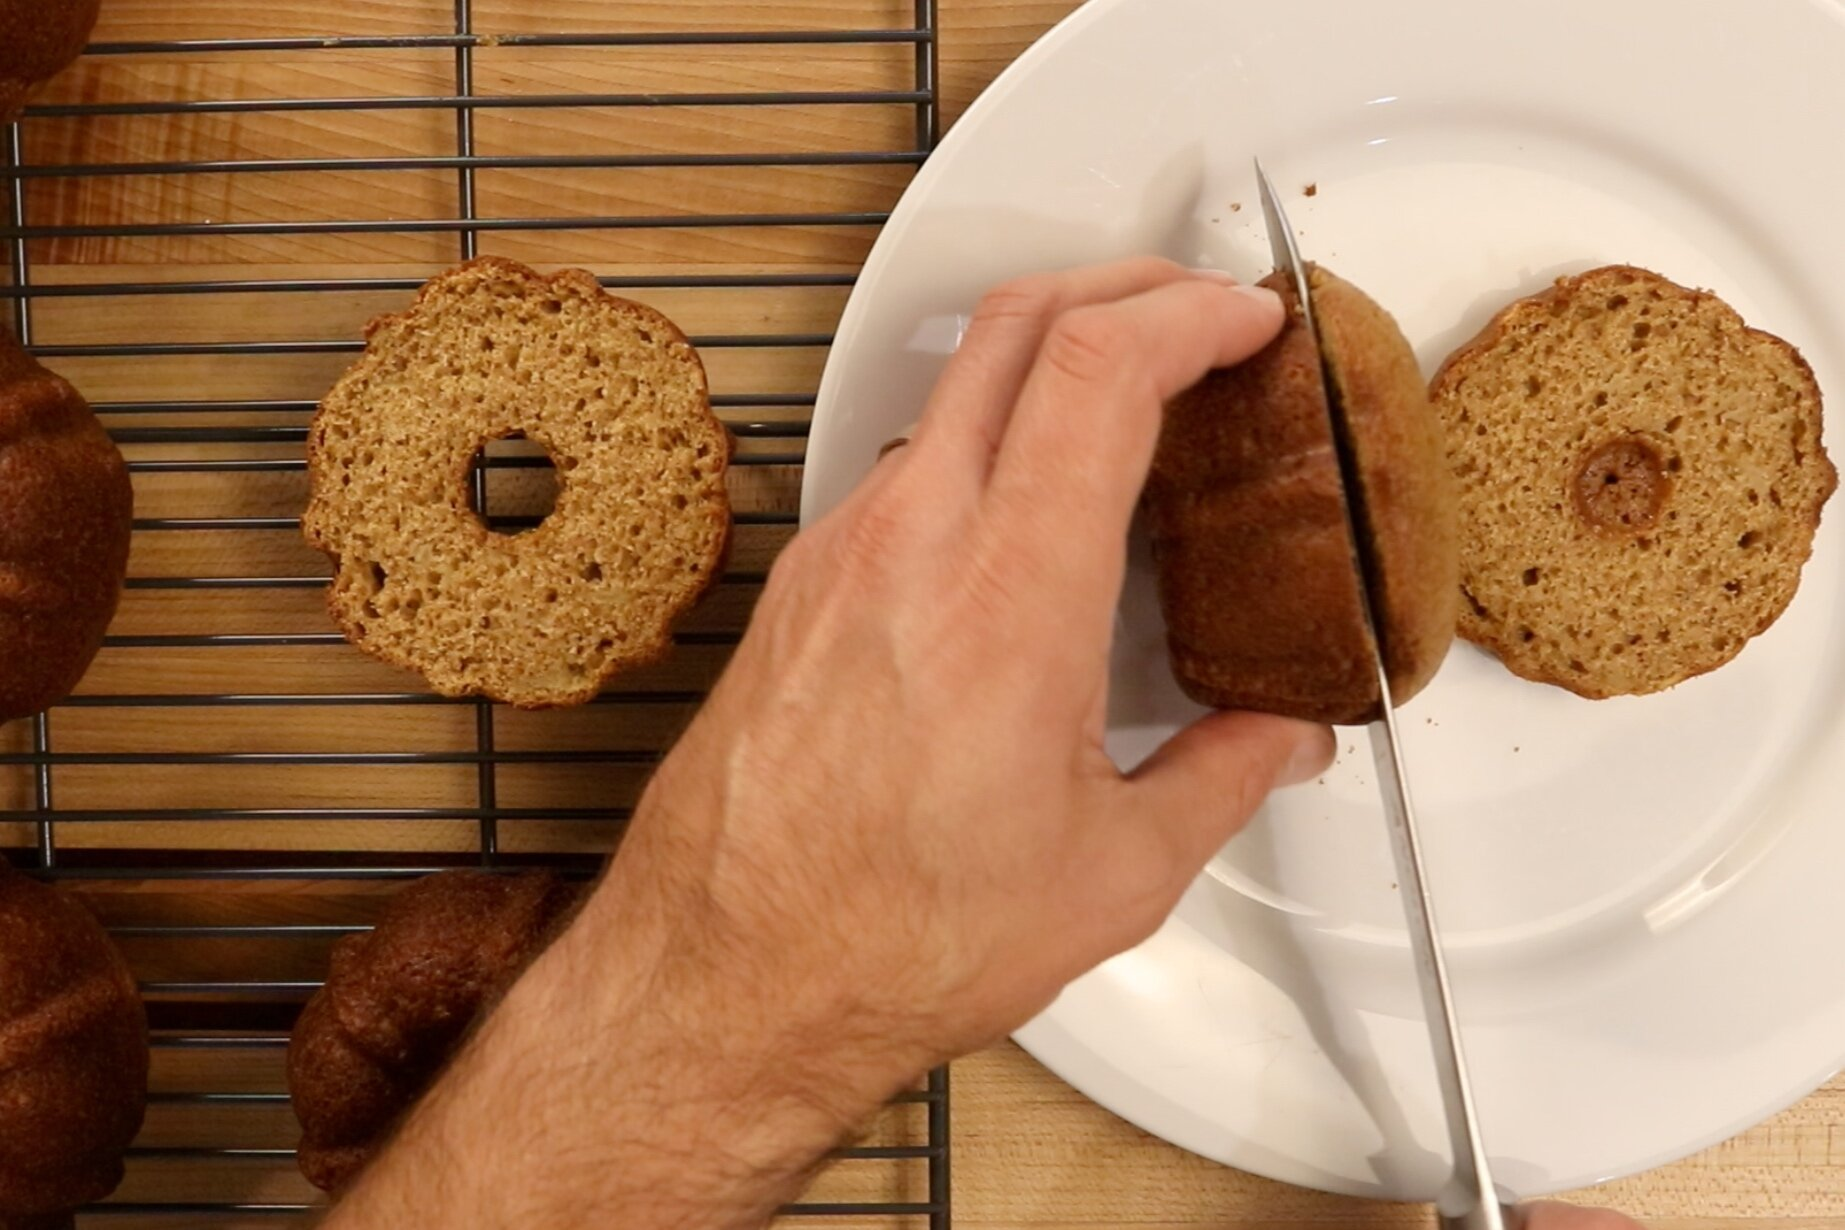 1. Level the cakes with a serrated knife. Remove the bottom of each cake so they all are the same height. -